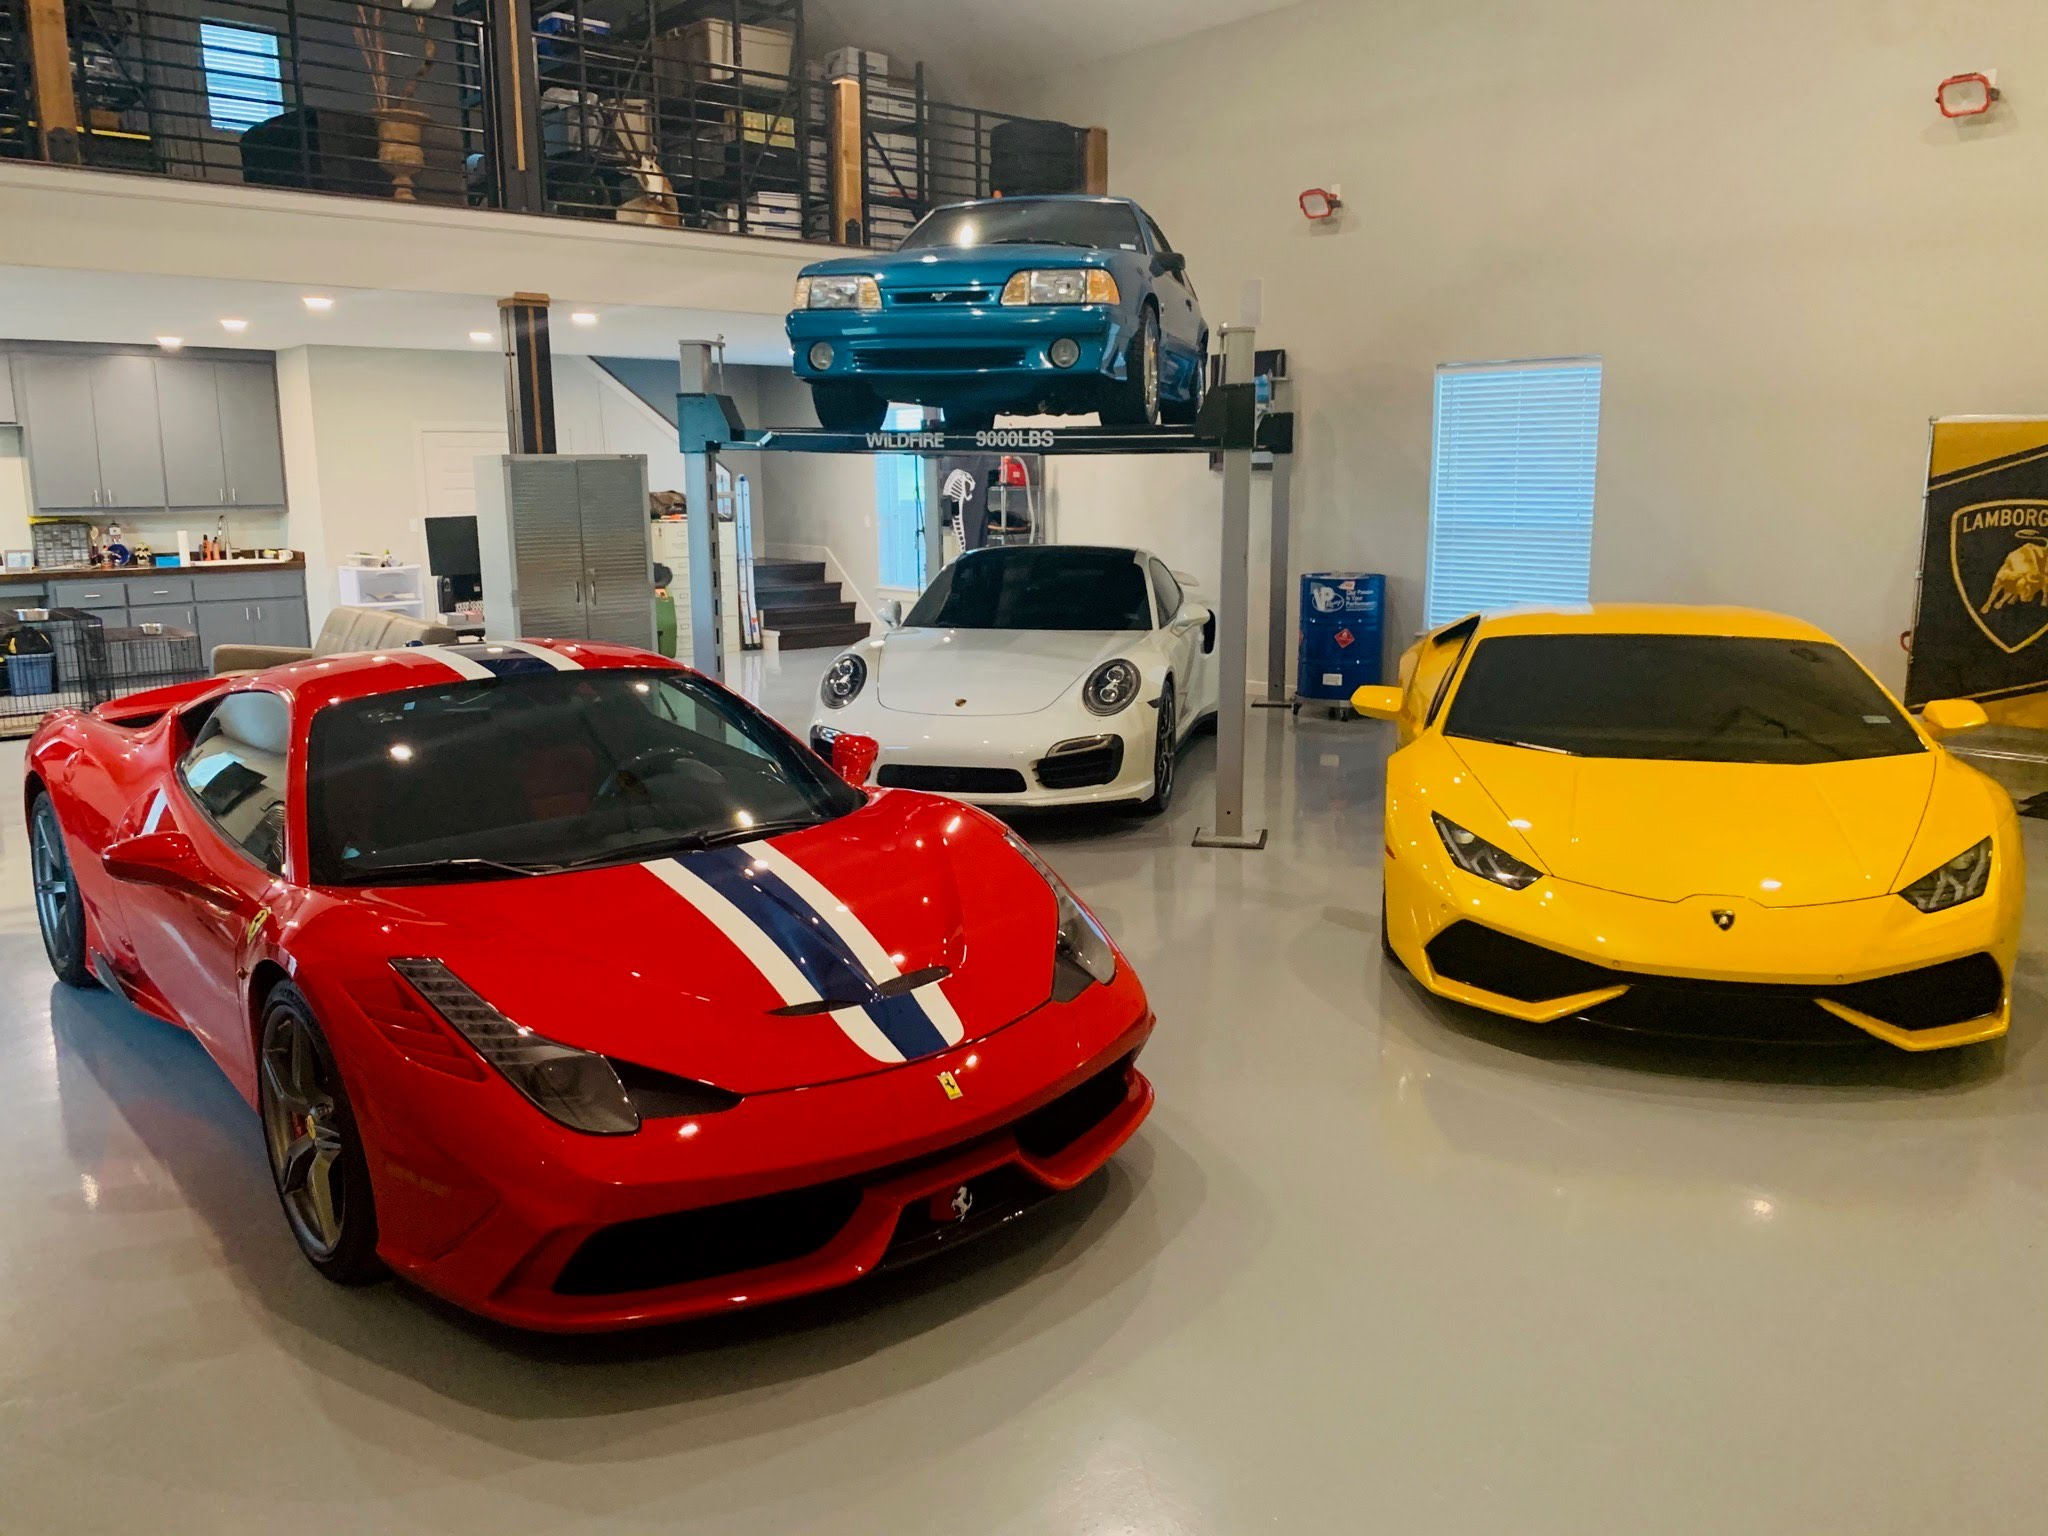 Exotic Cars with Wildfire Lifts WF9000